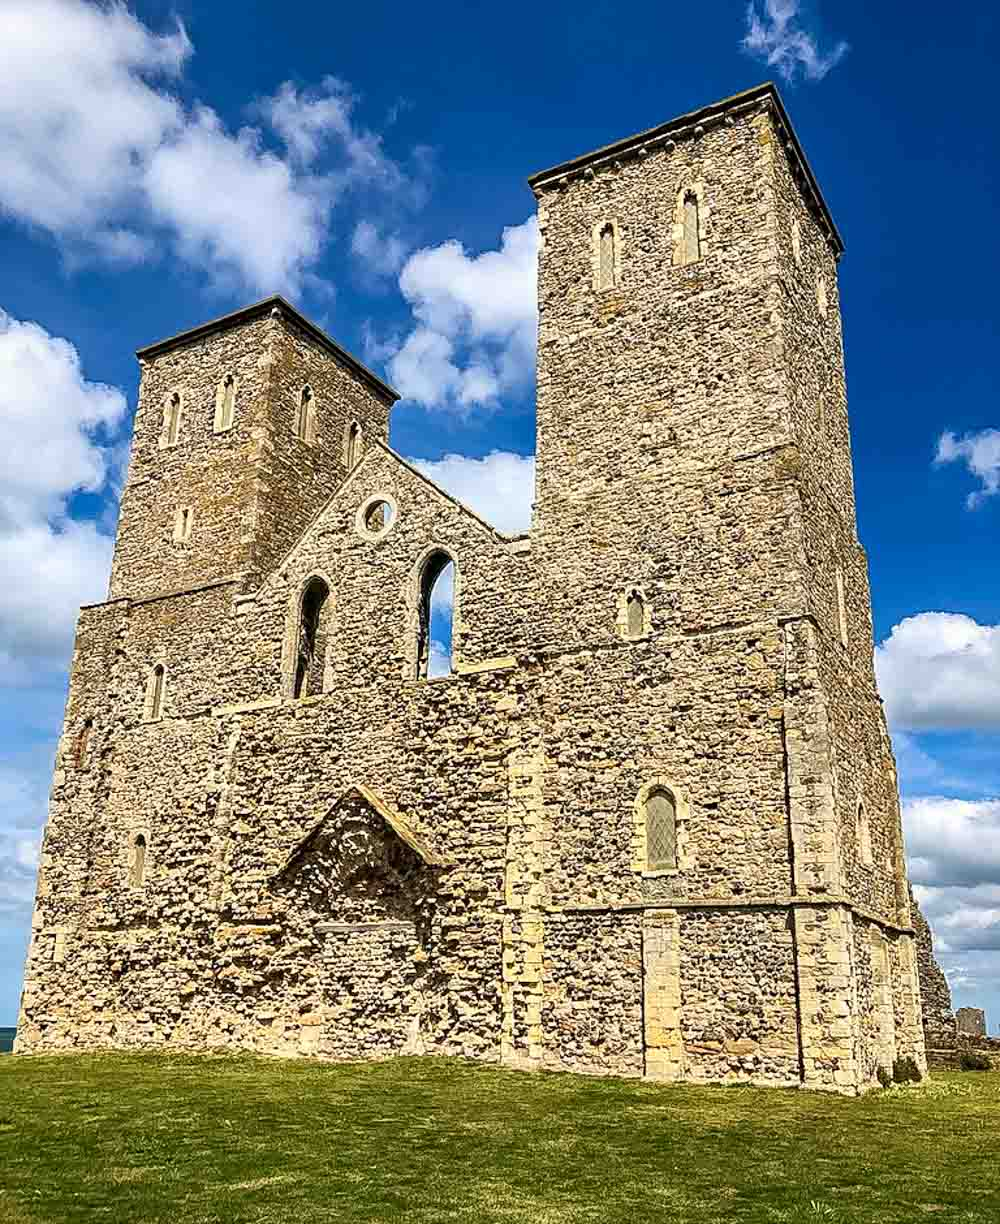 IMG_6109 Exploring the Historic Reculver Towers of Herne Bay